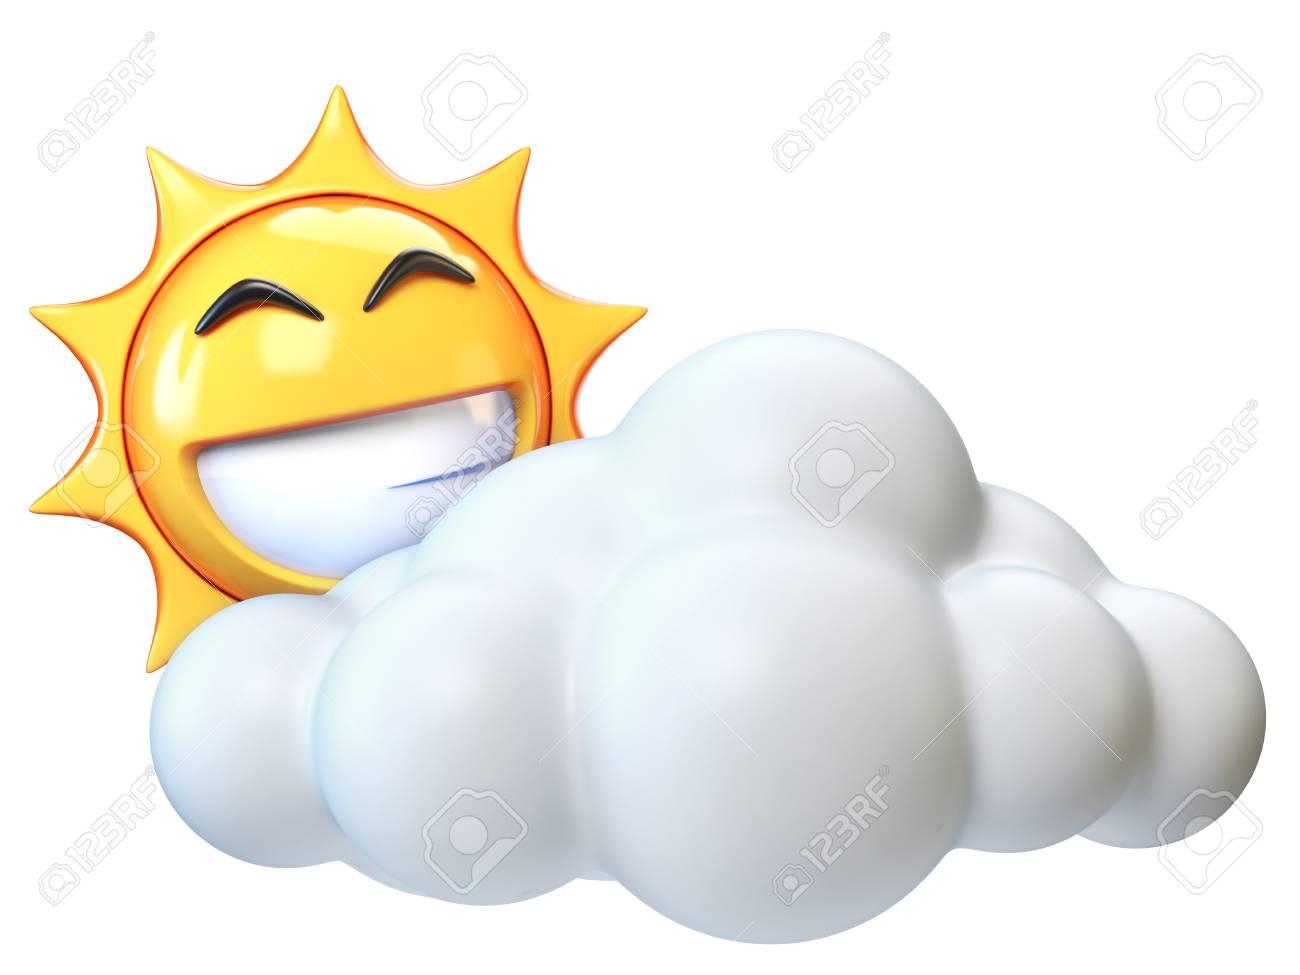 Weather icon Sunny with clouds, sun emoji with cartoon cloud